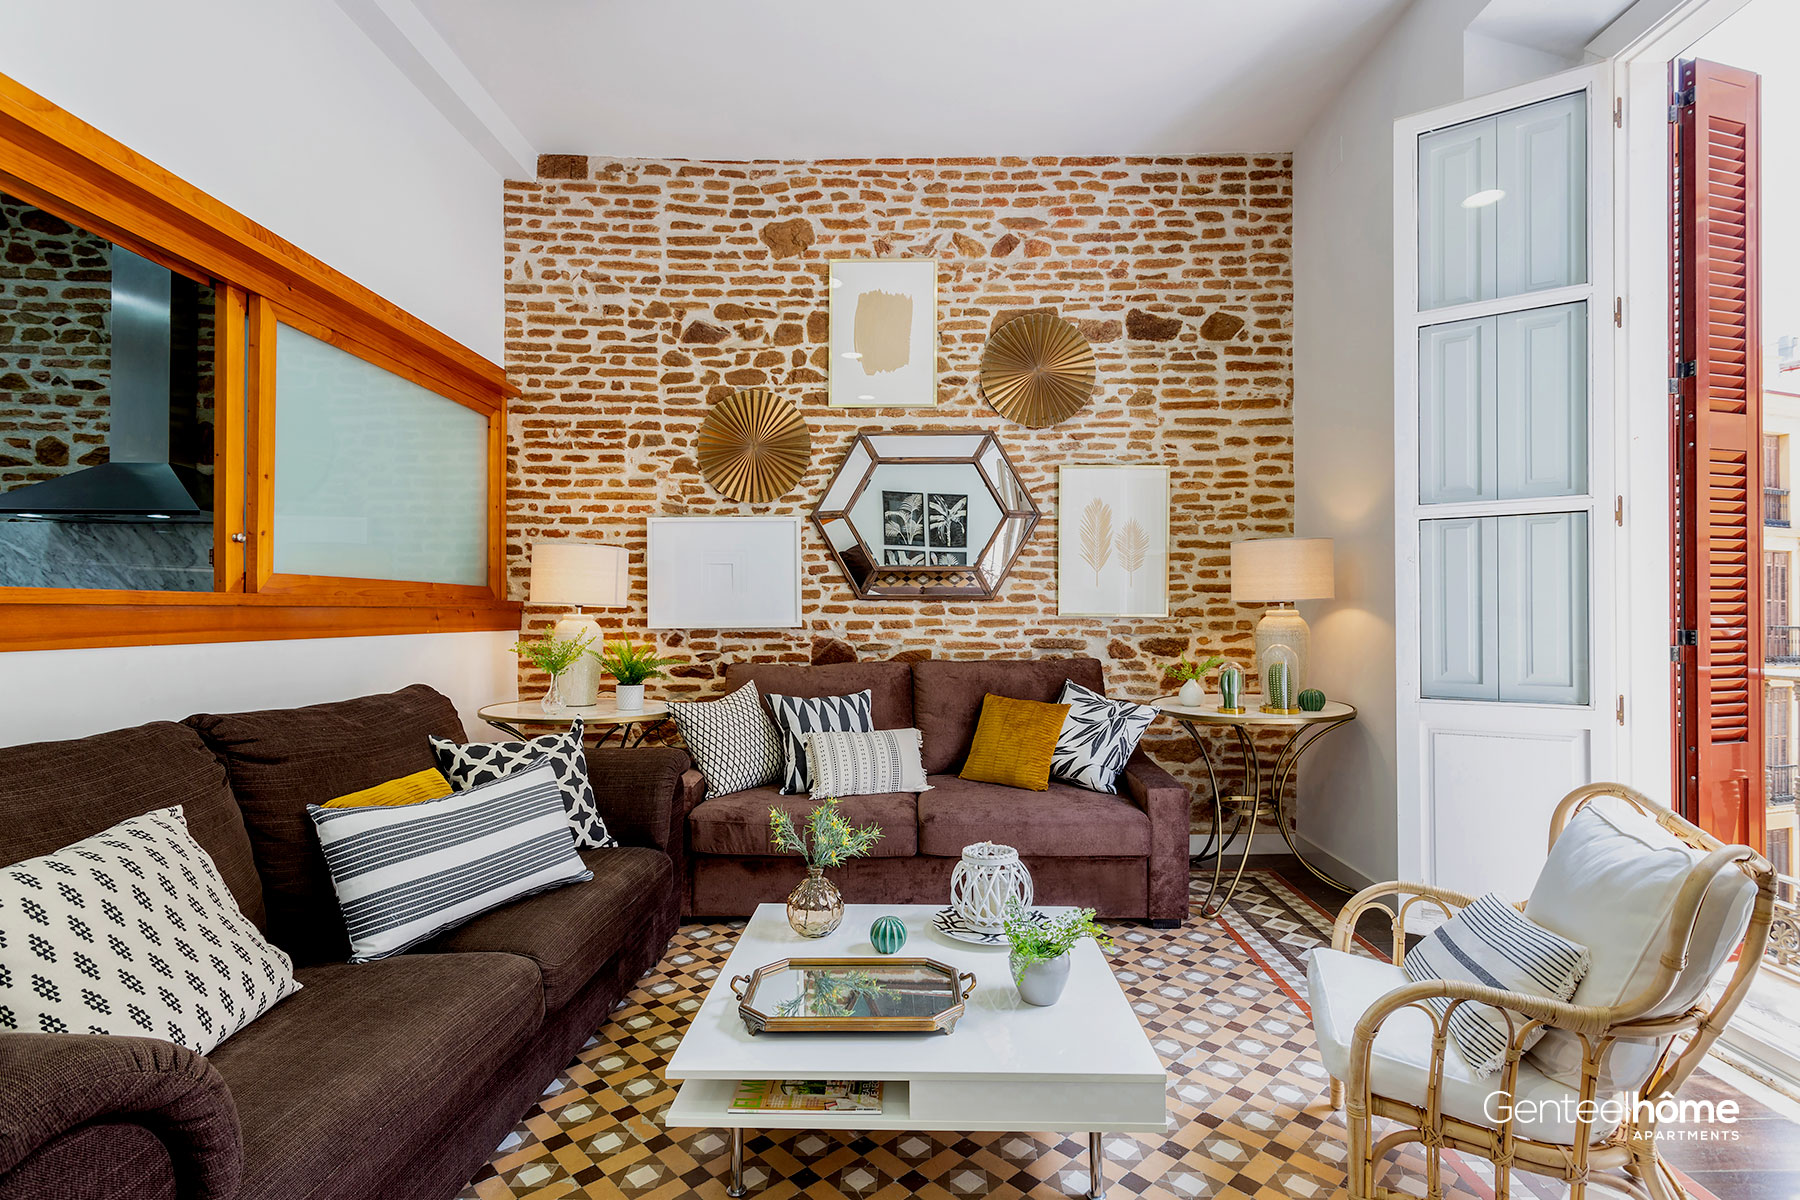 apartment-Larios-photo1